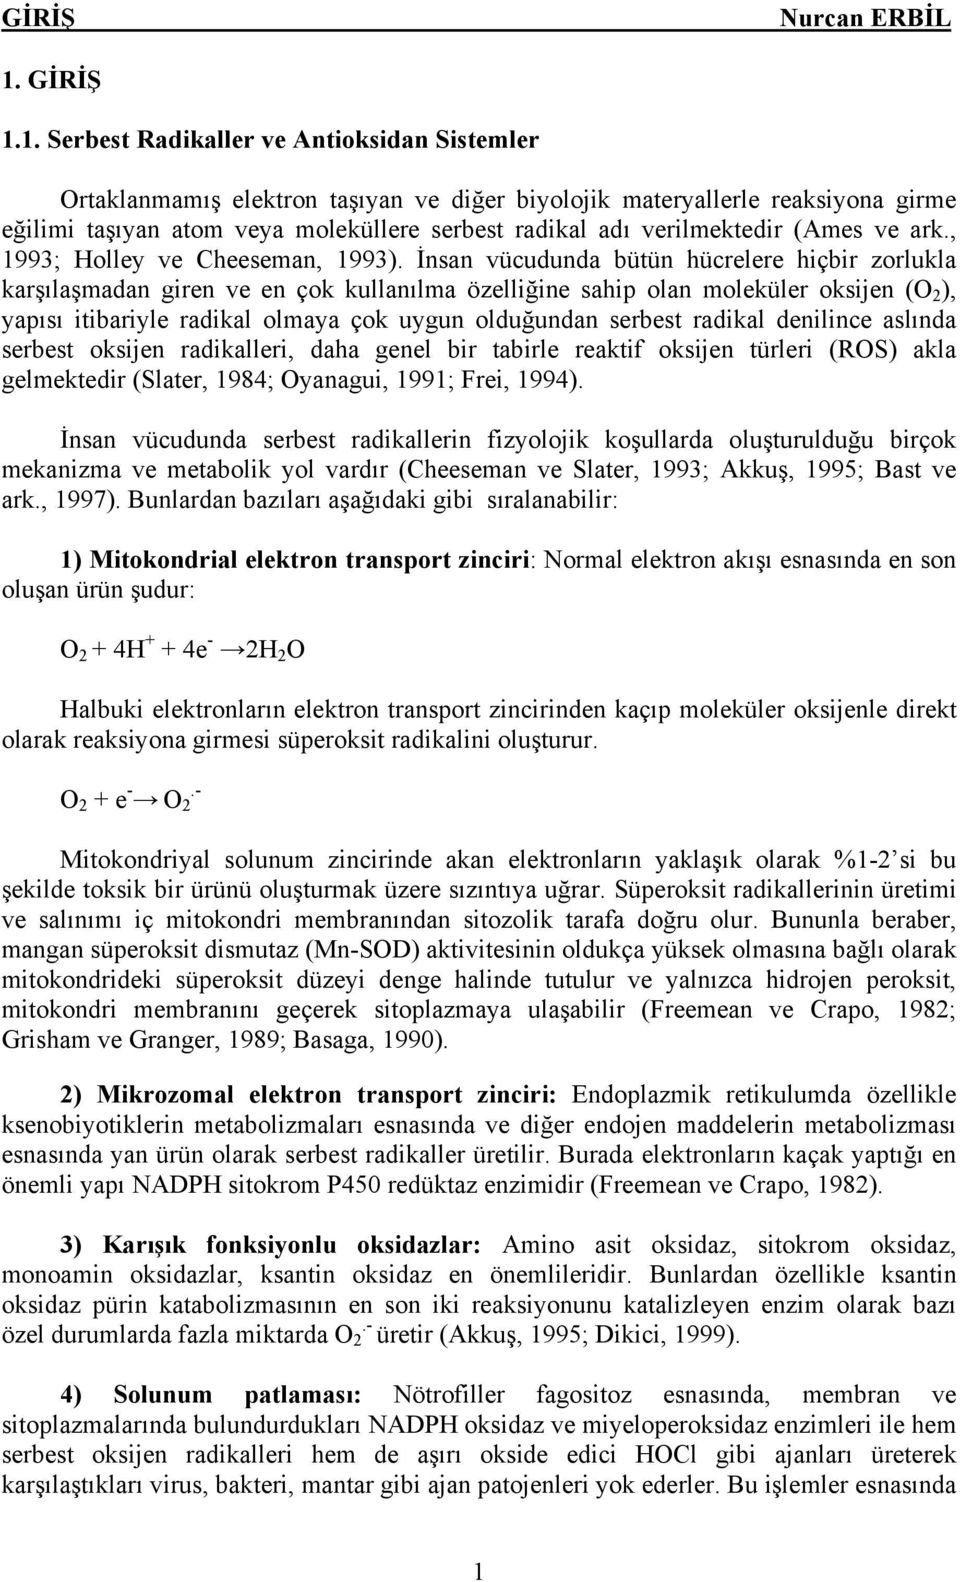 (Ames ve ark., 1993; Holley ve Cheeseman, 1993).